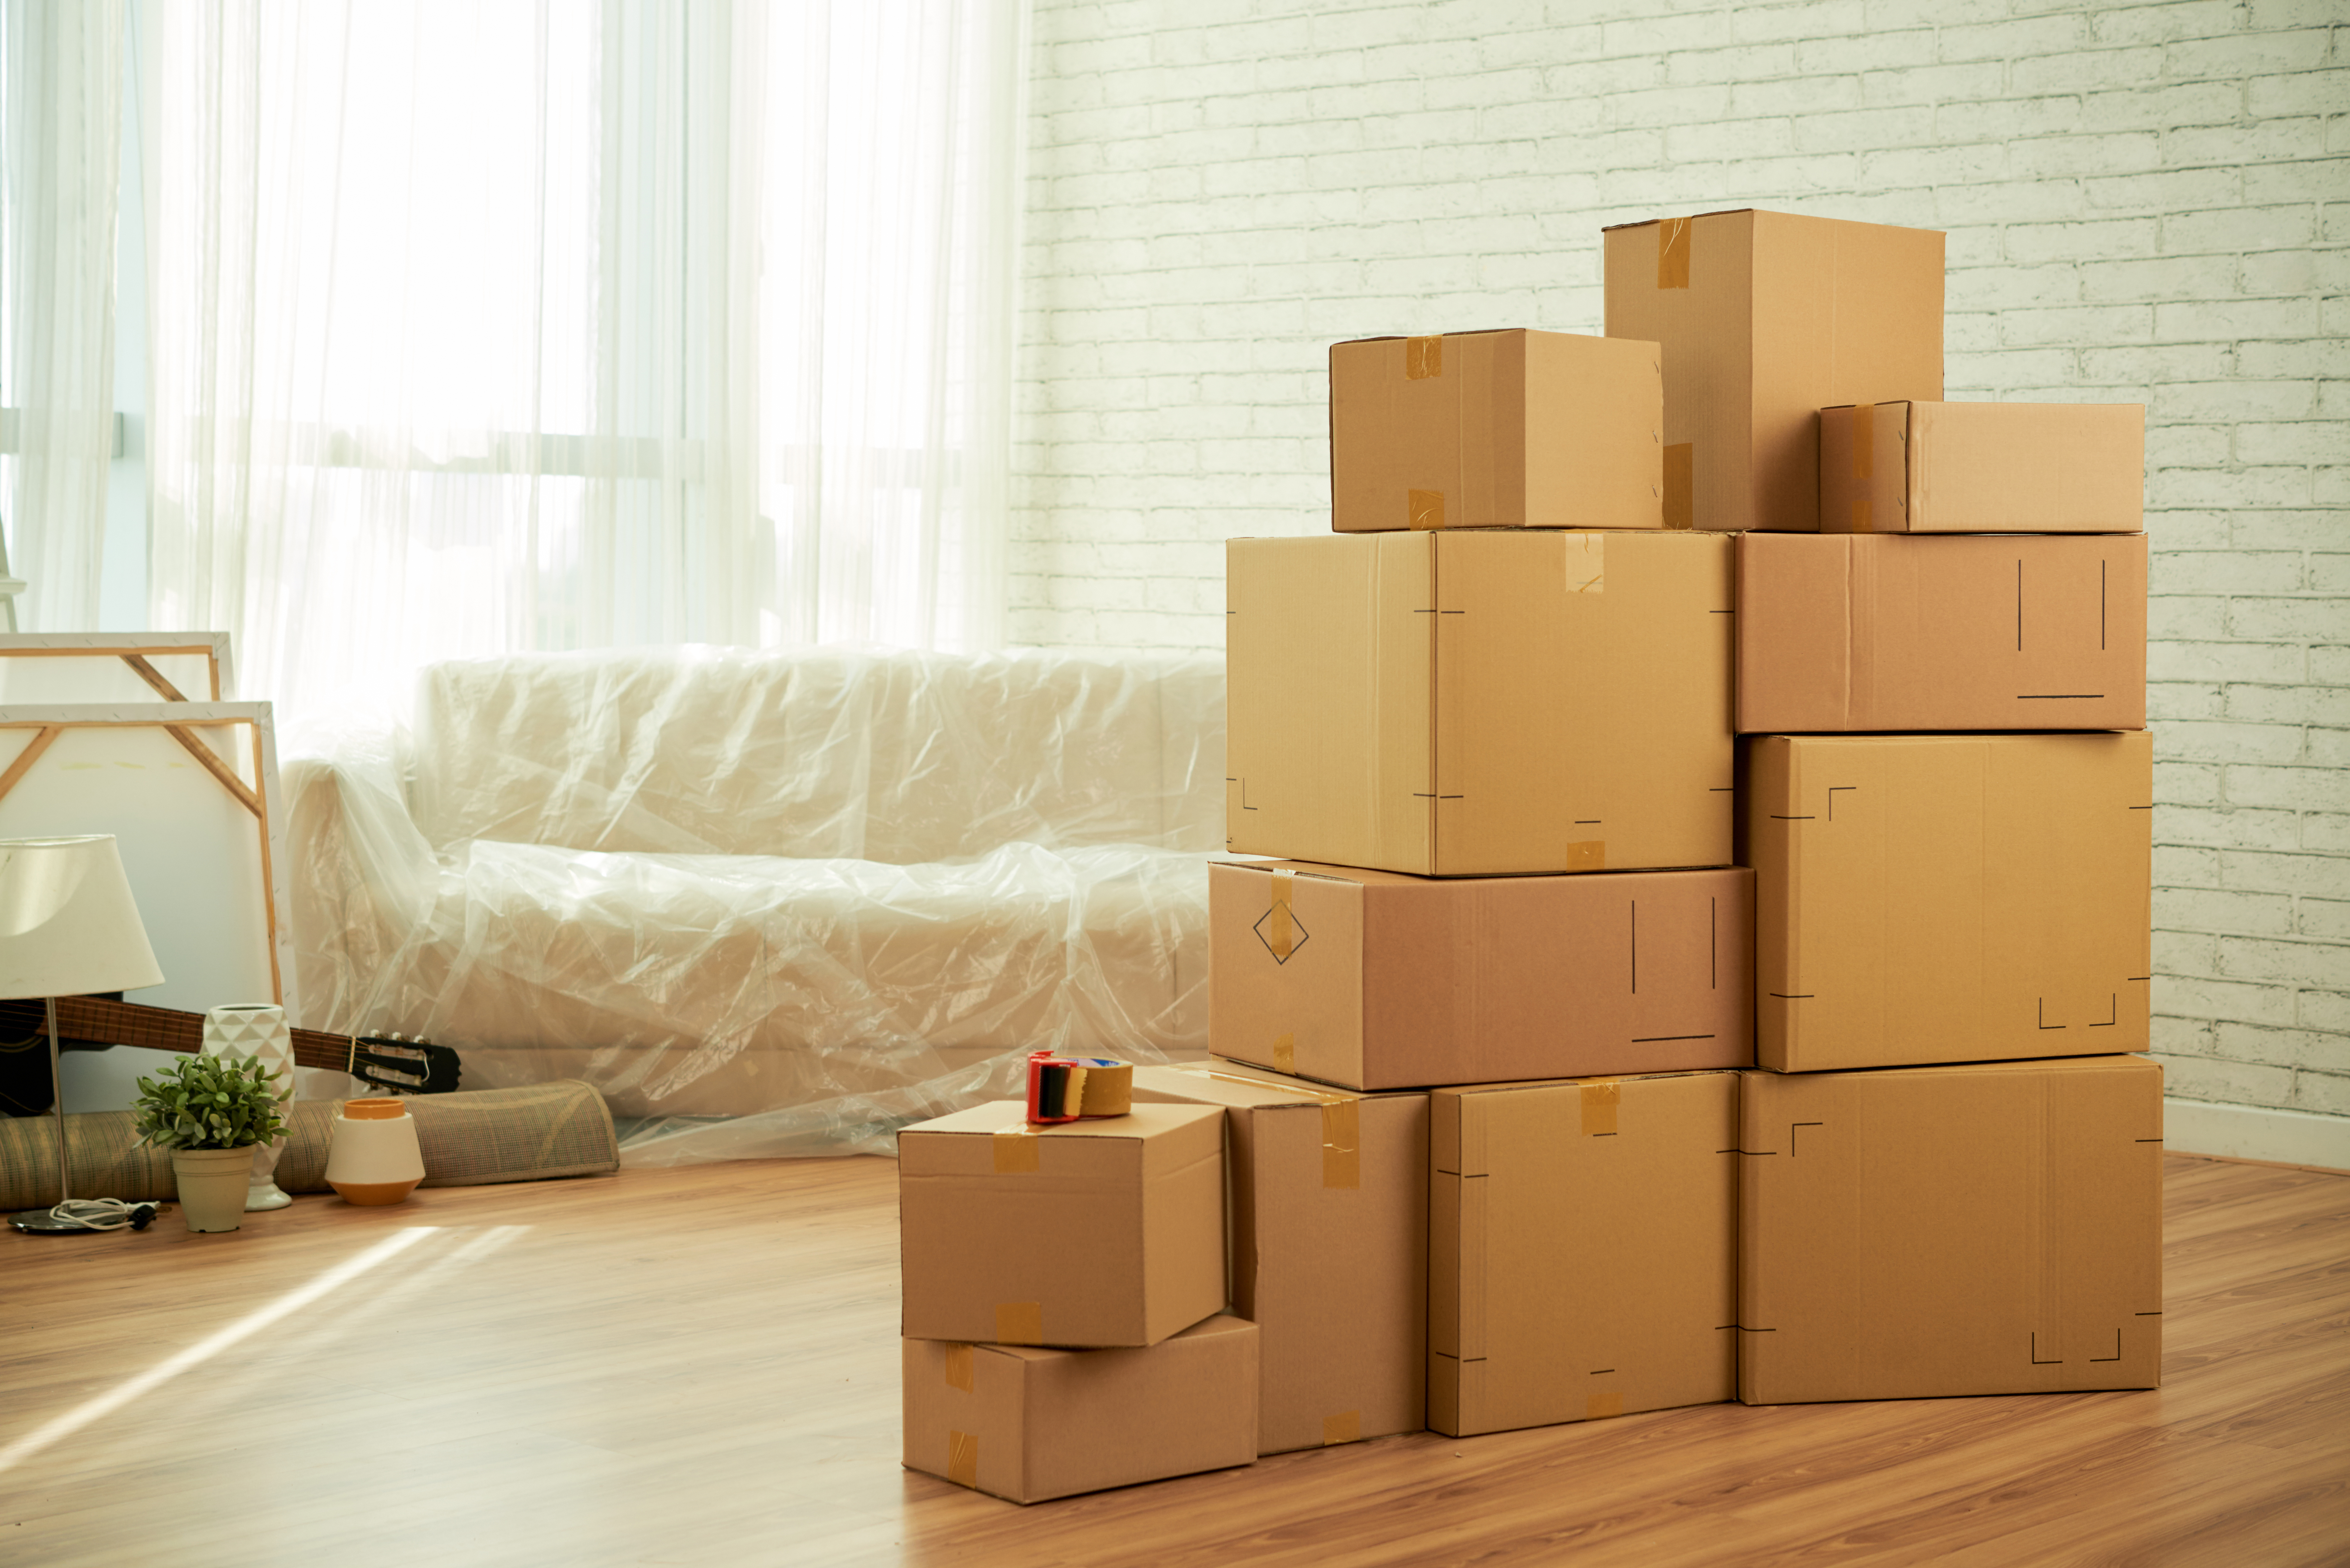 How to Calculate Square Foot of a Box